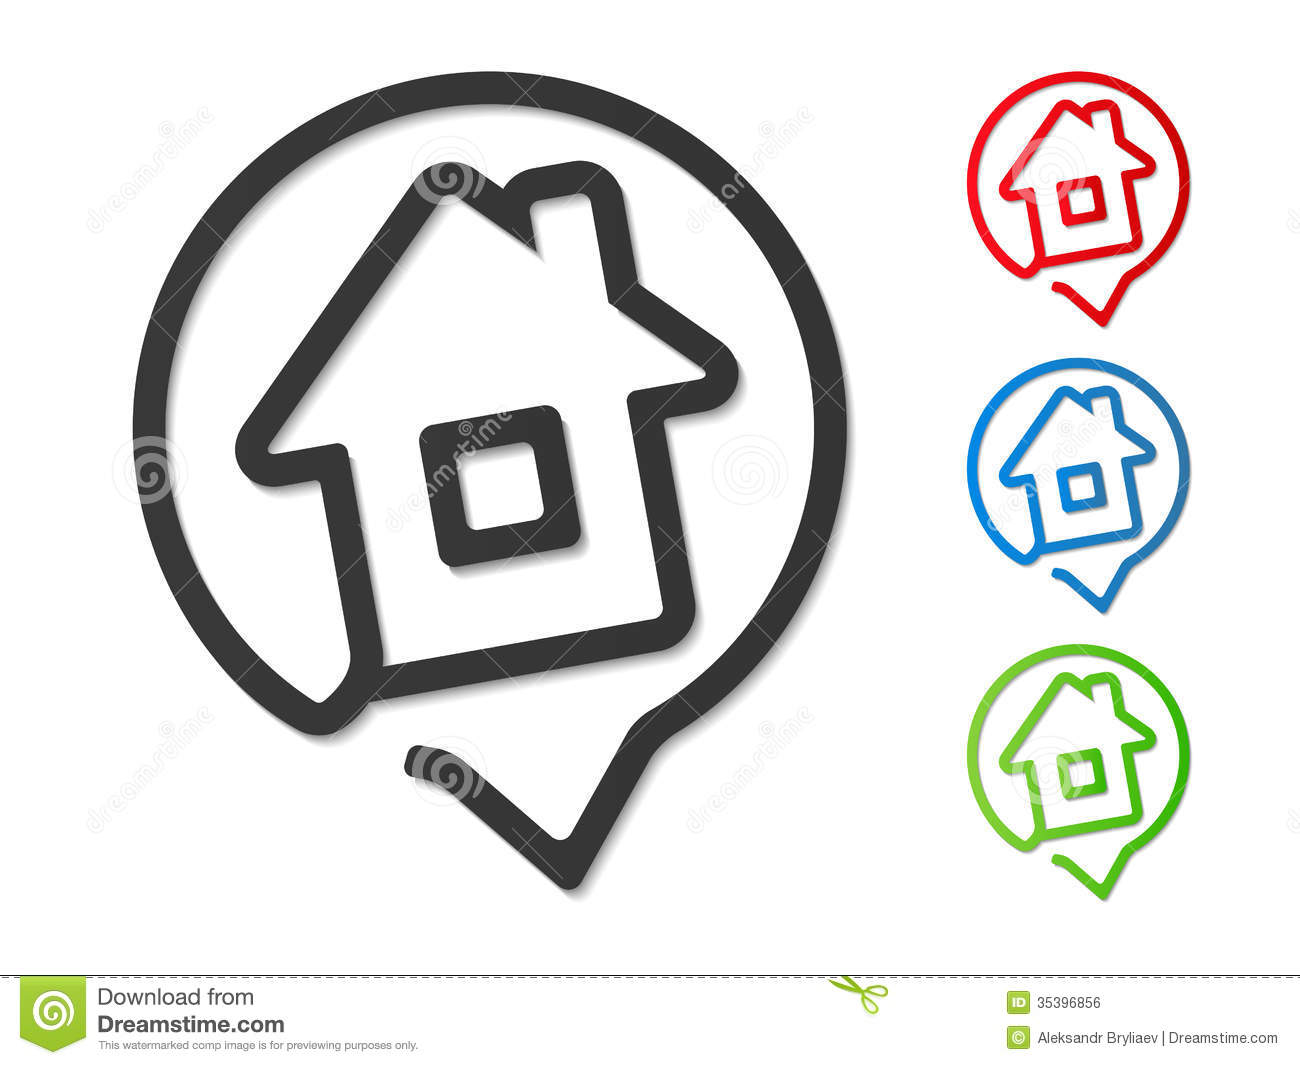 Location Position Icon Free Vector Graphic On Pixabay: House Icon Royalty Free Stock Image